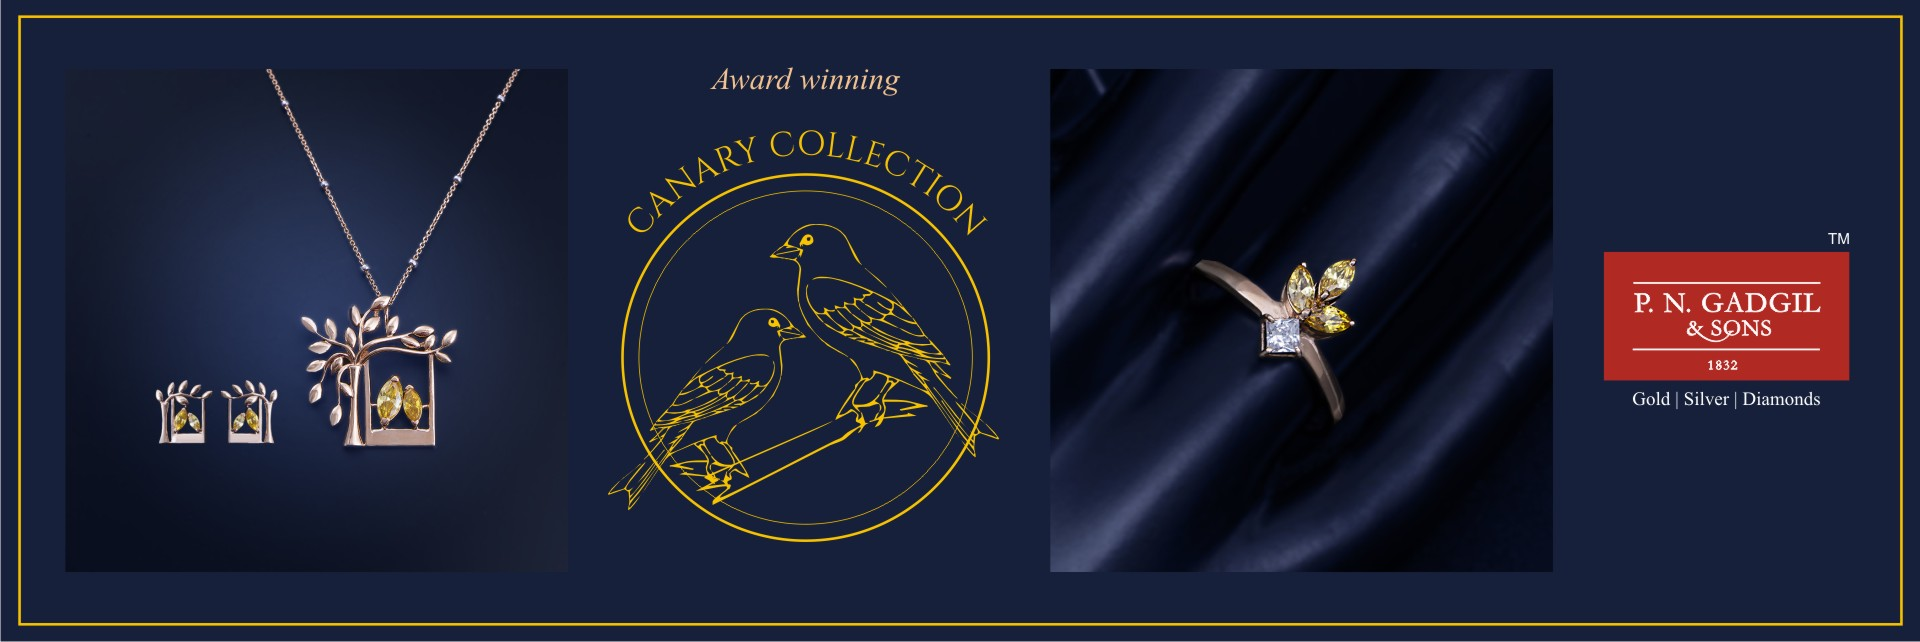 Canary Collection